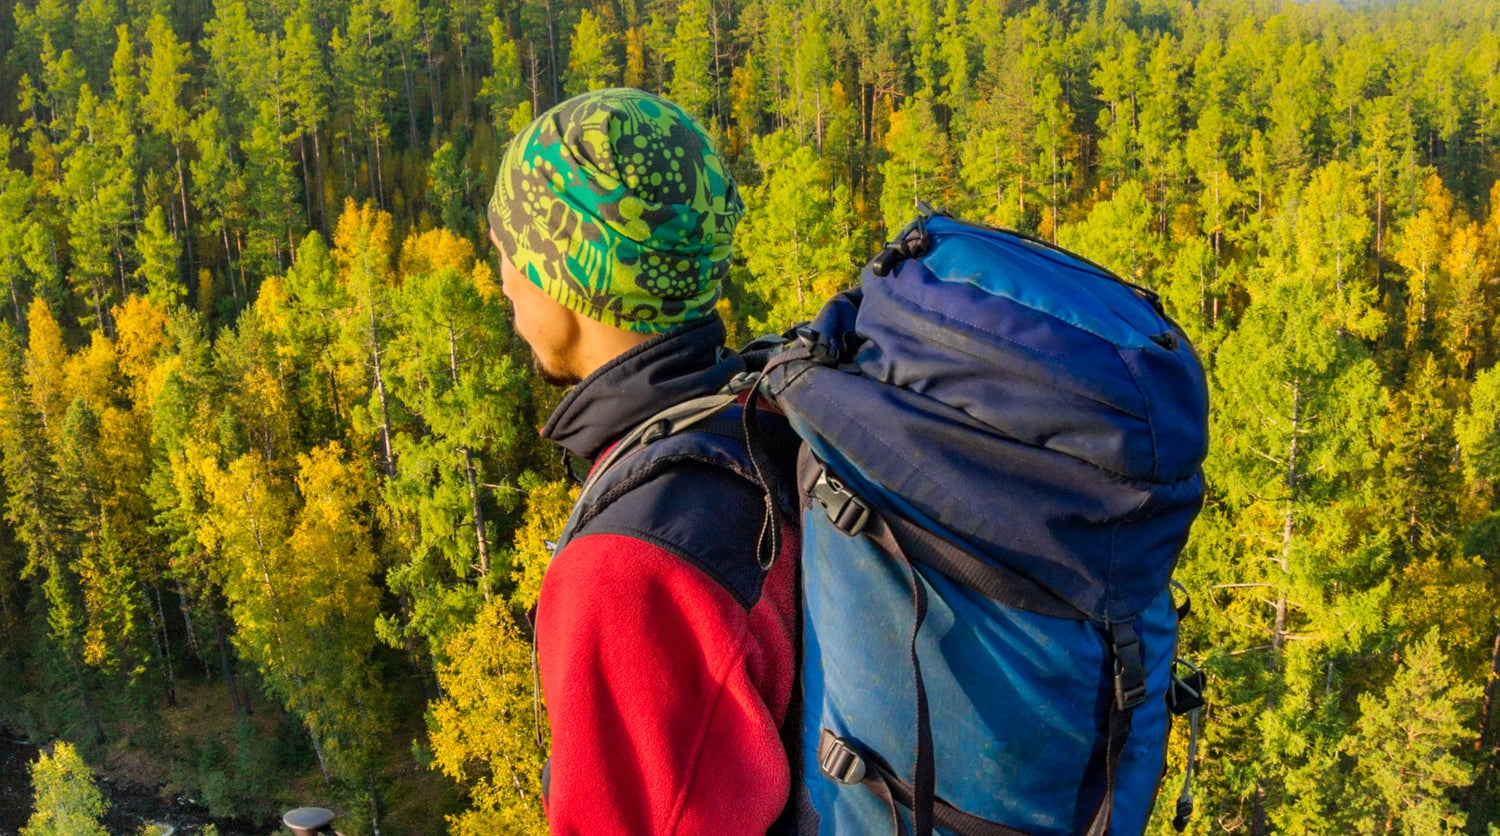 Man with backpack and trekking pole in bandana standing on a rock at dawn above a background autumn forest.